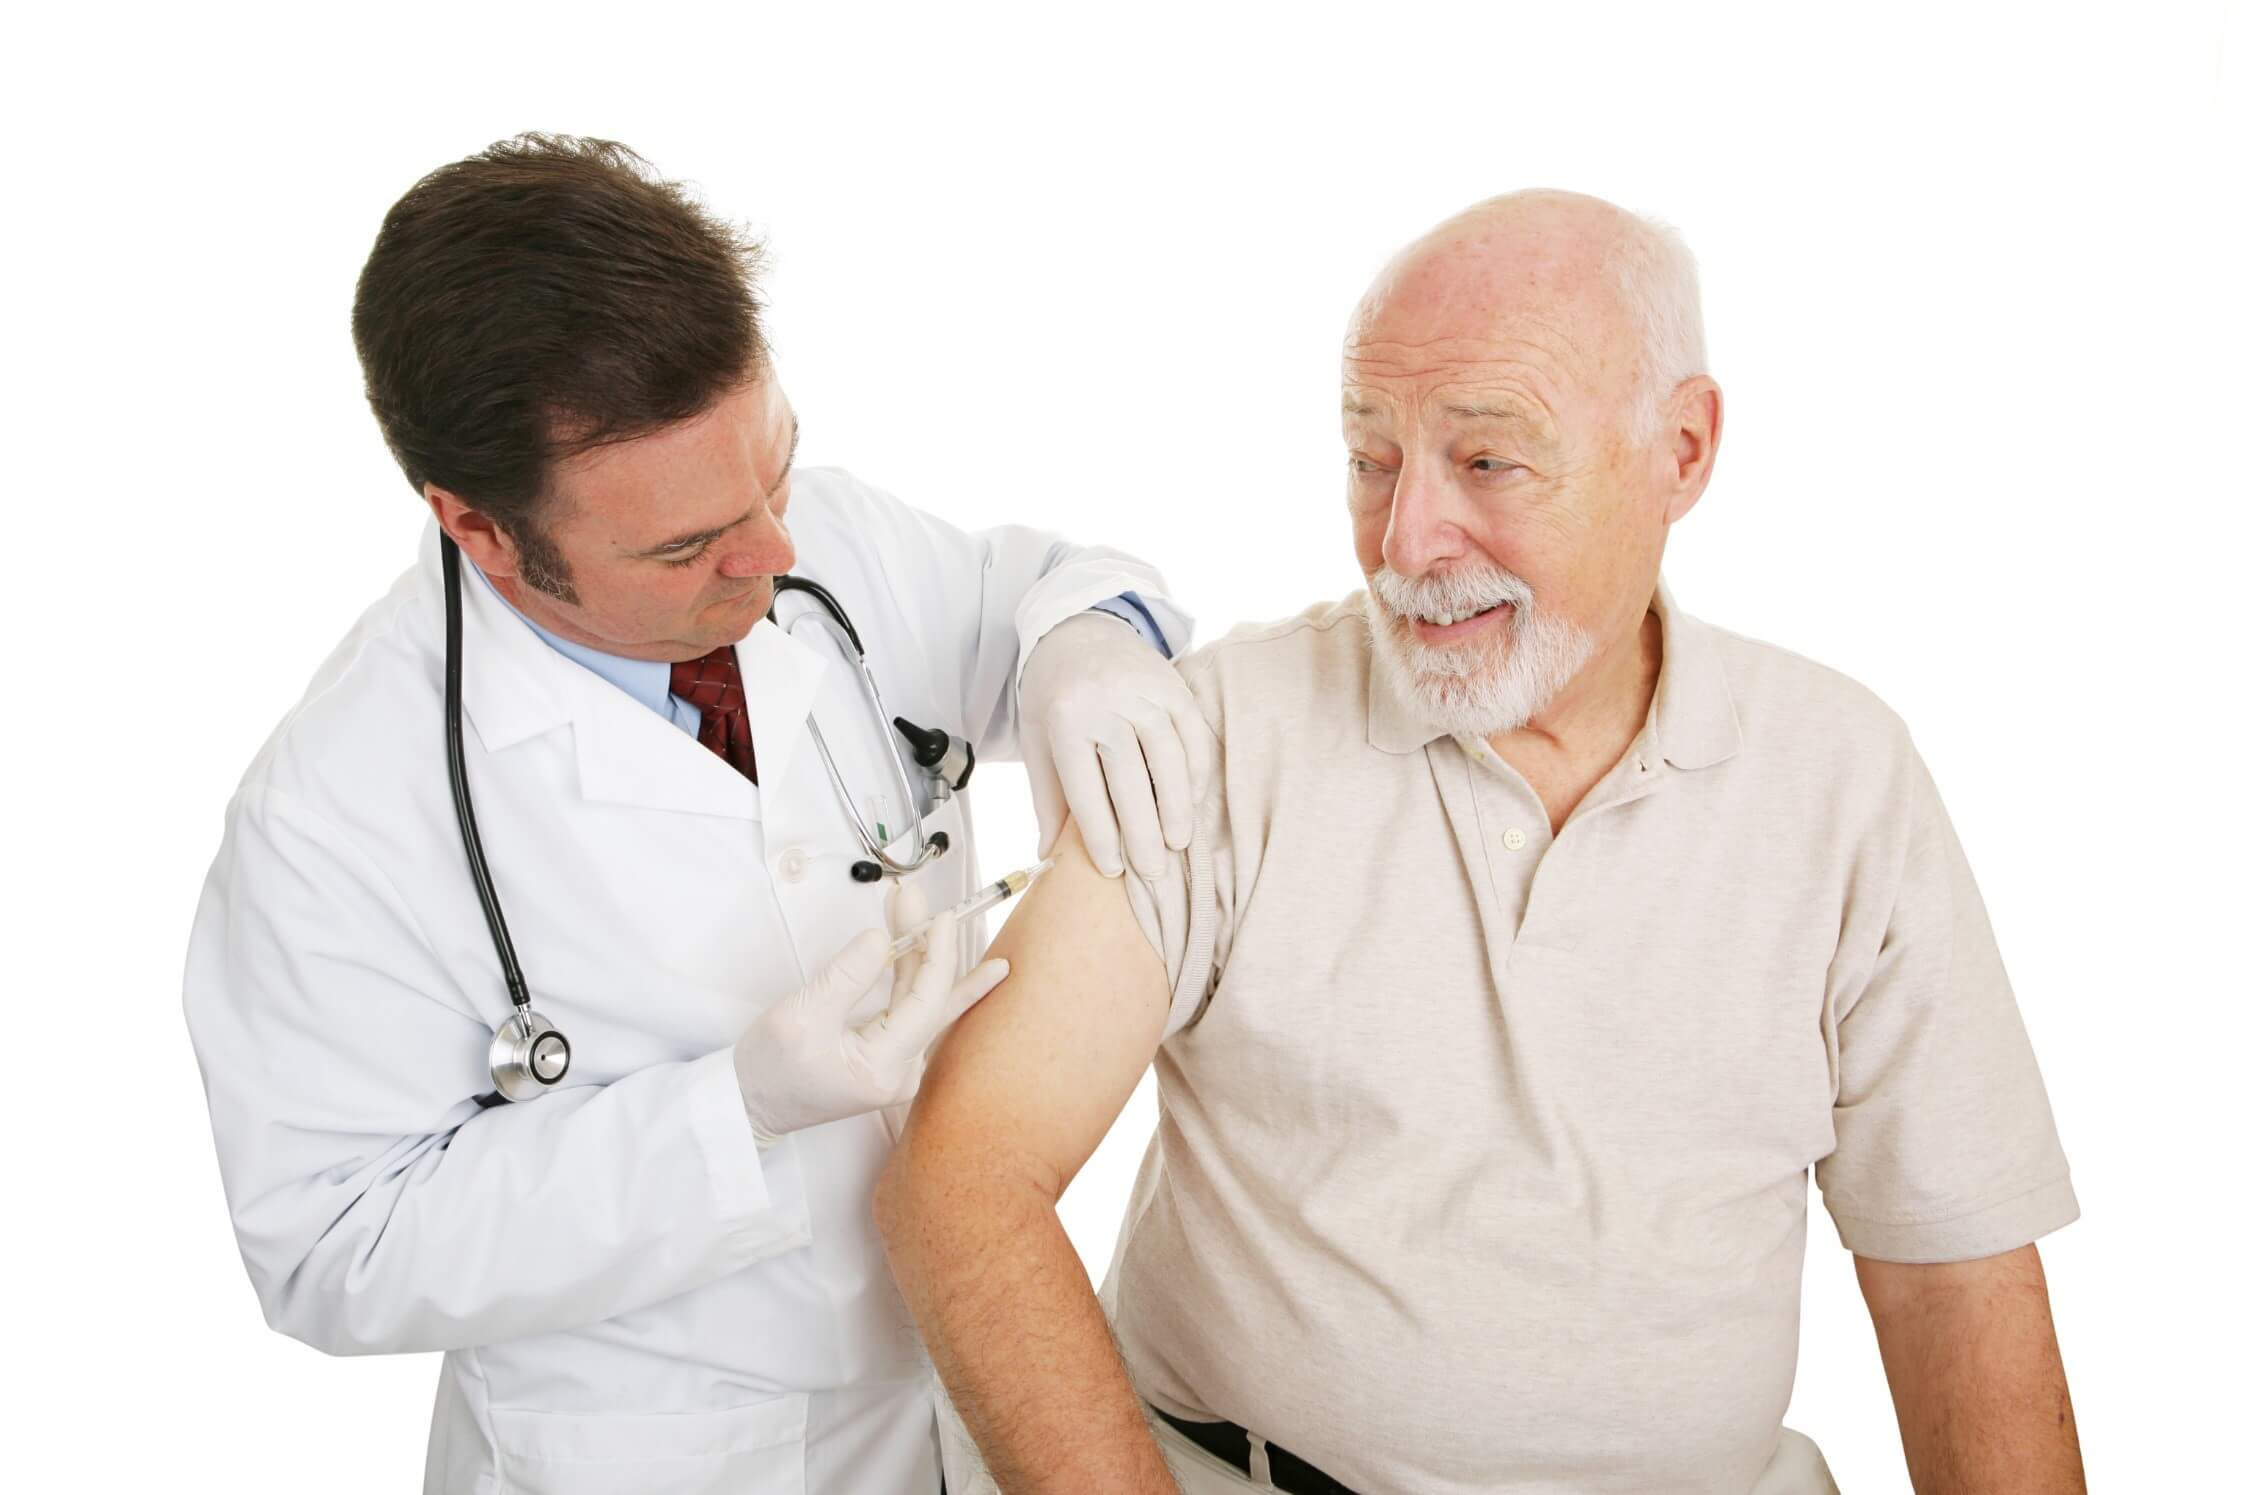 Somerset Woods Nursing Center: Why You Should Get the Flu Vaccine